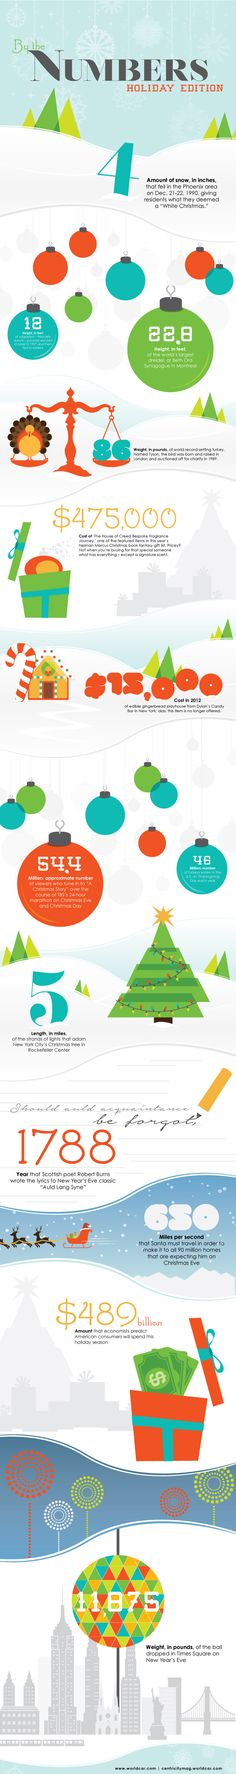 By the Number: Holiday Edition #infographic #Holiday #Thanksgiving #Winter